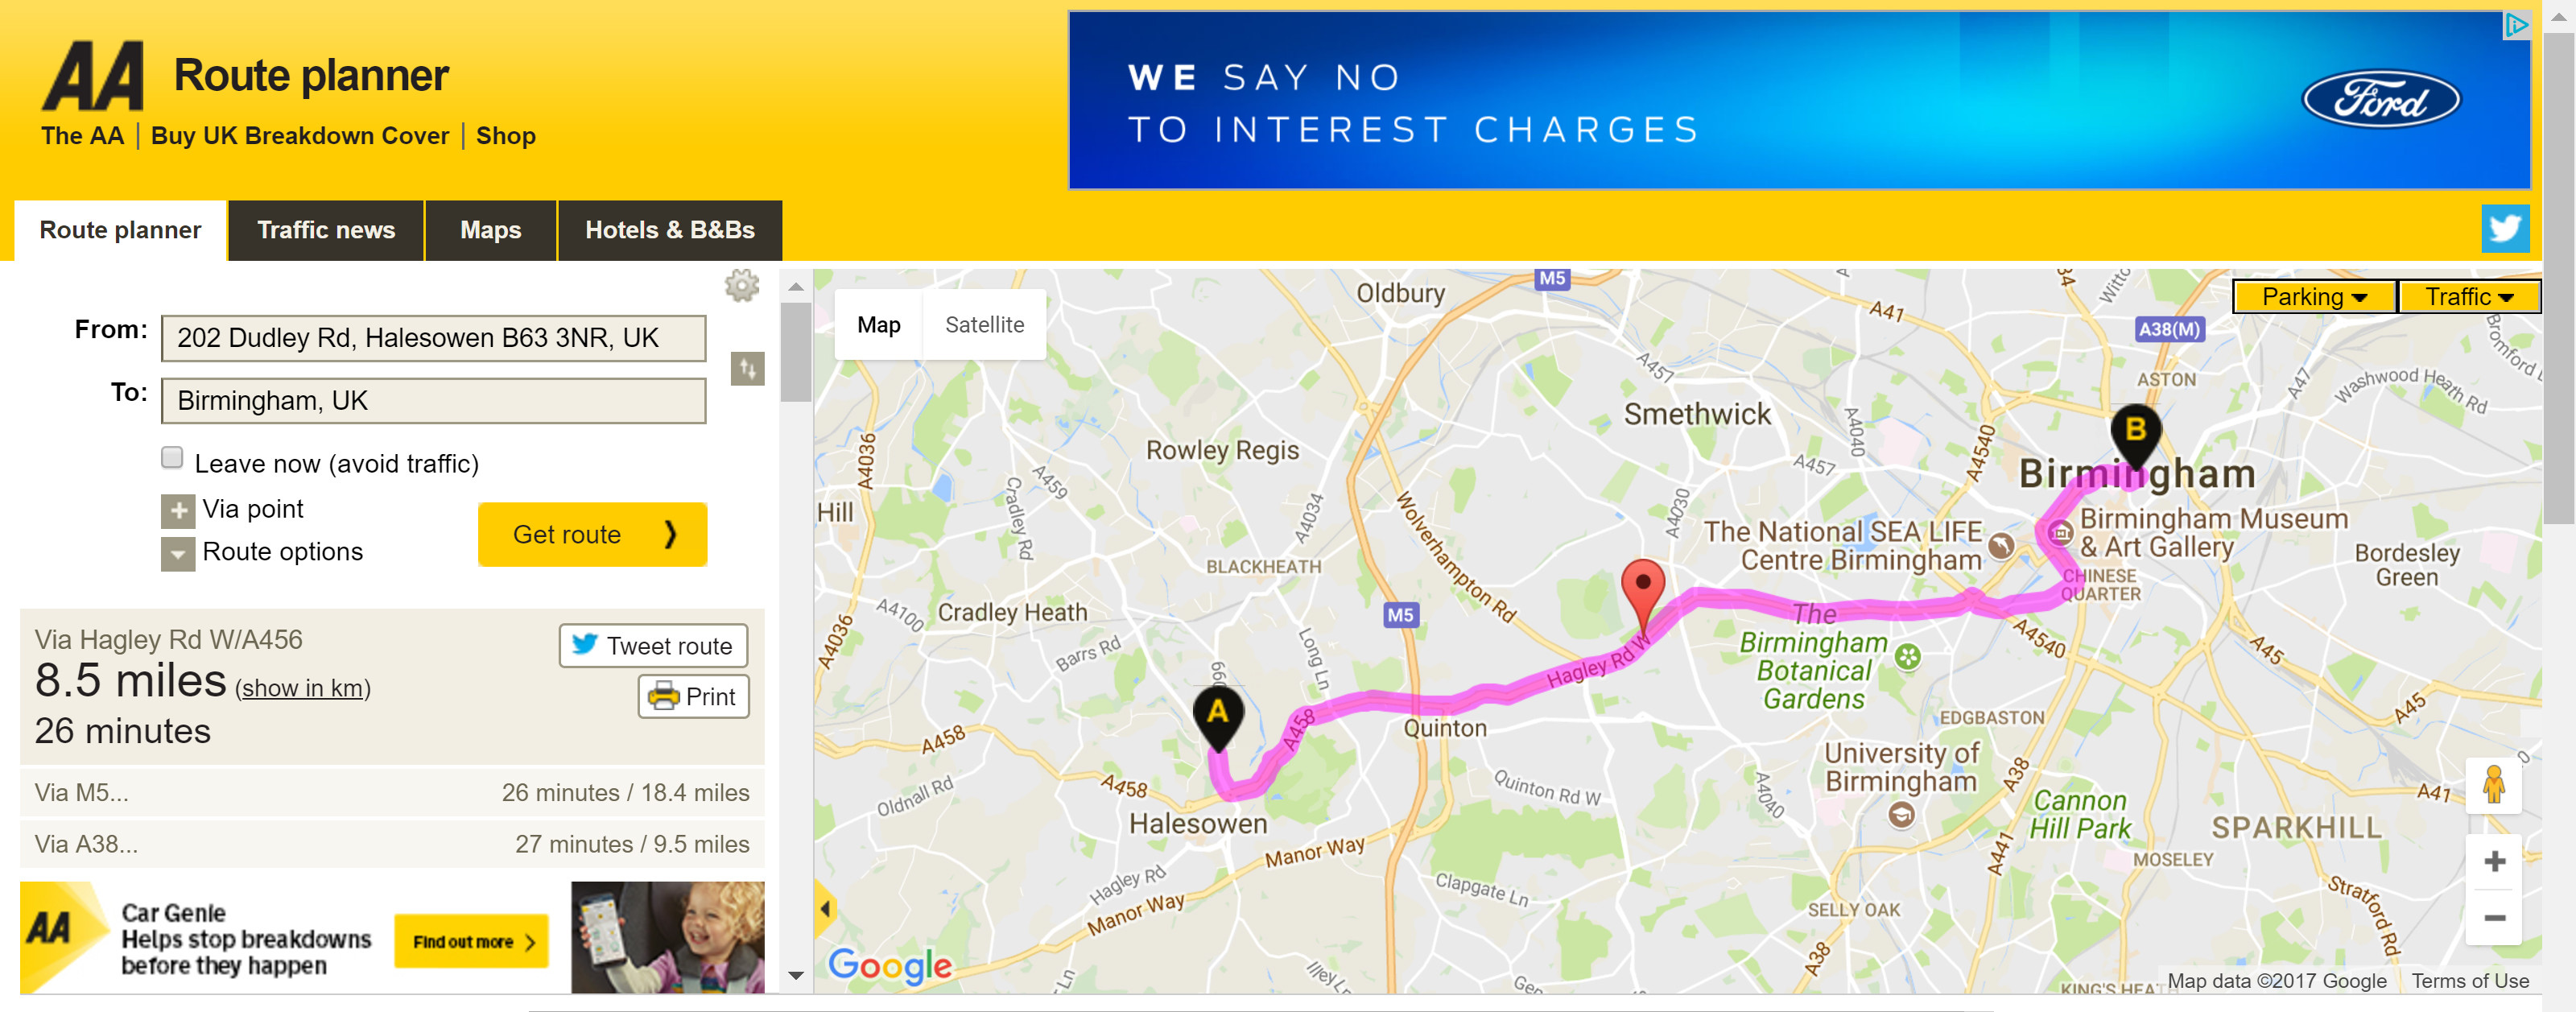 aa route planner image   Chameleon Web Services